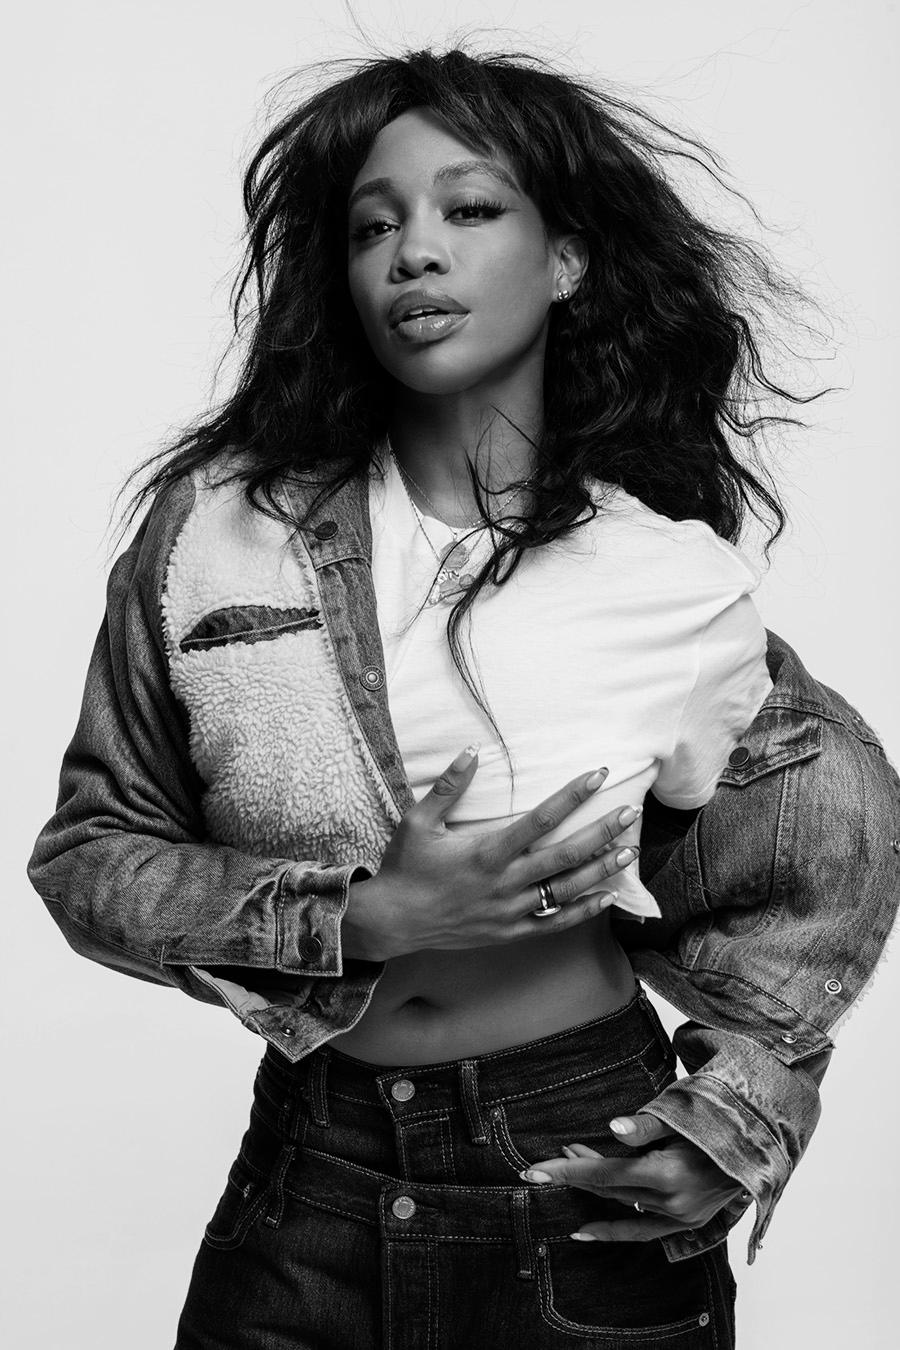 Levi's 501 Campaign With SZA and Hailey Baldwin